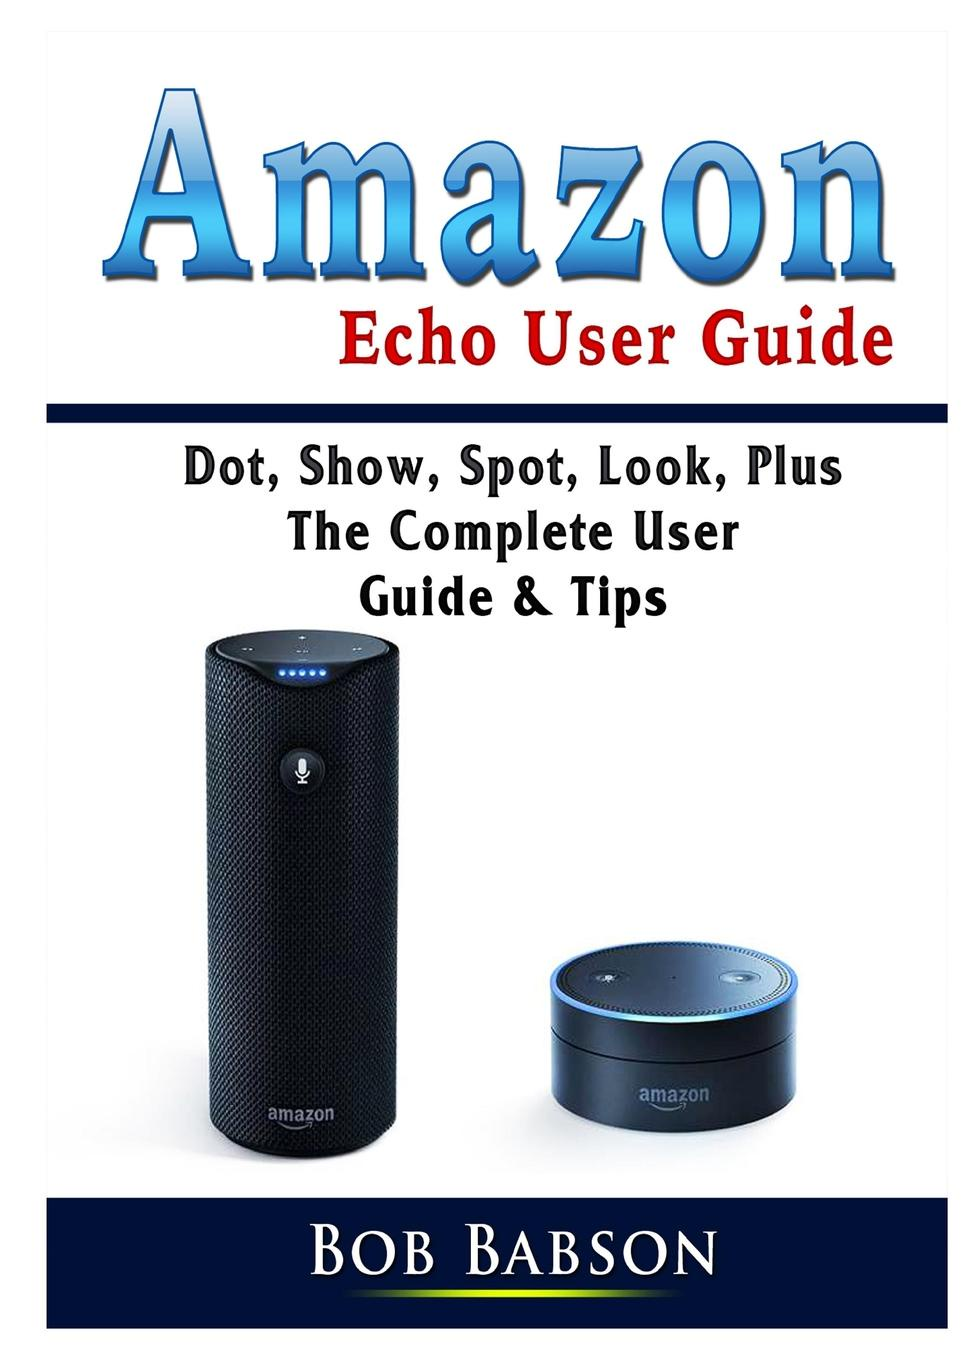 Bob Babson Amazon Echo User Guide. Dot, Show, Spot, Look, Plus The Complete User Guide & Tips